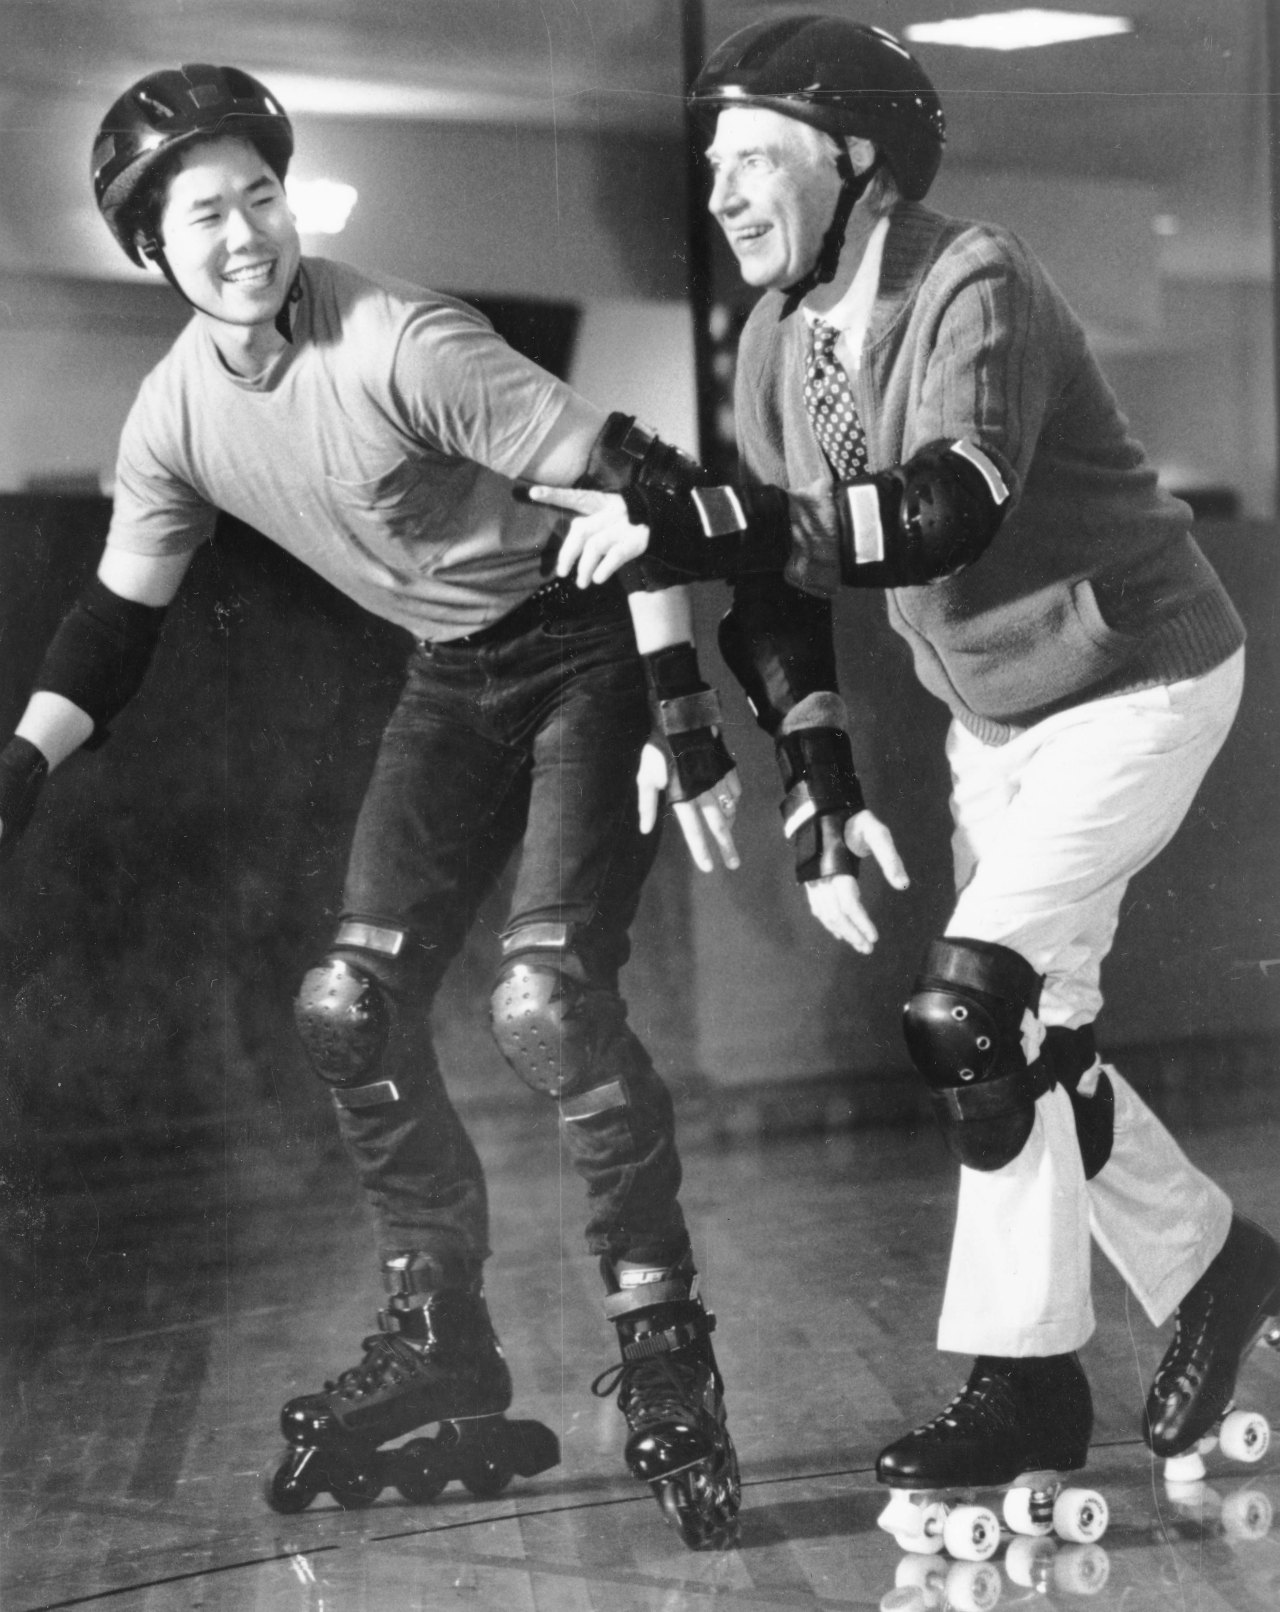 Mister Rogers learns safety tips on roller skates, 1995